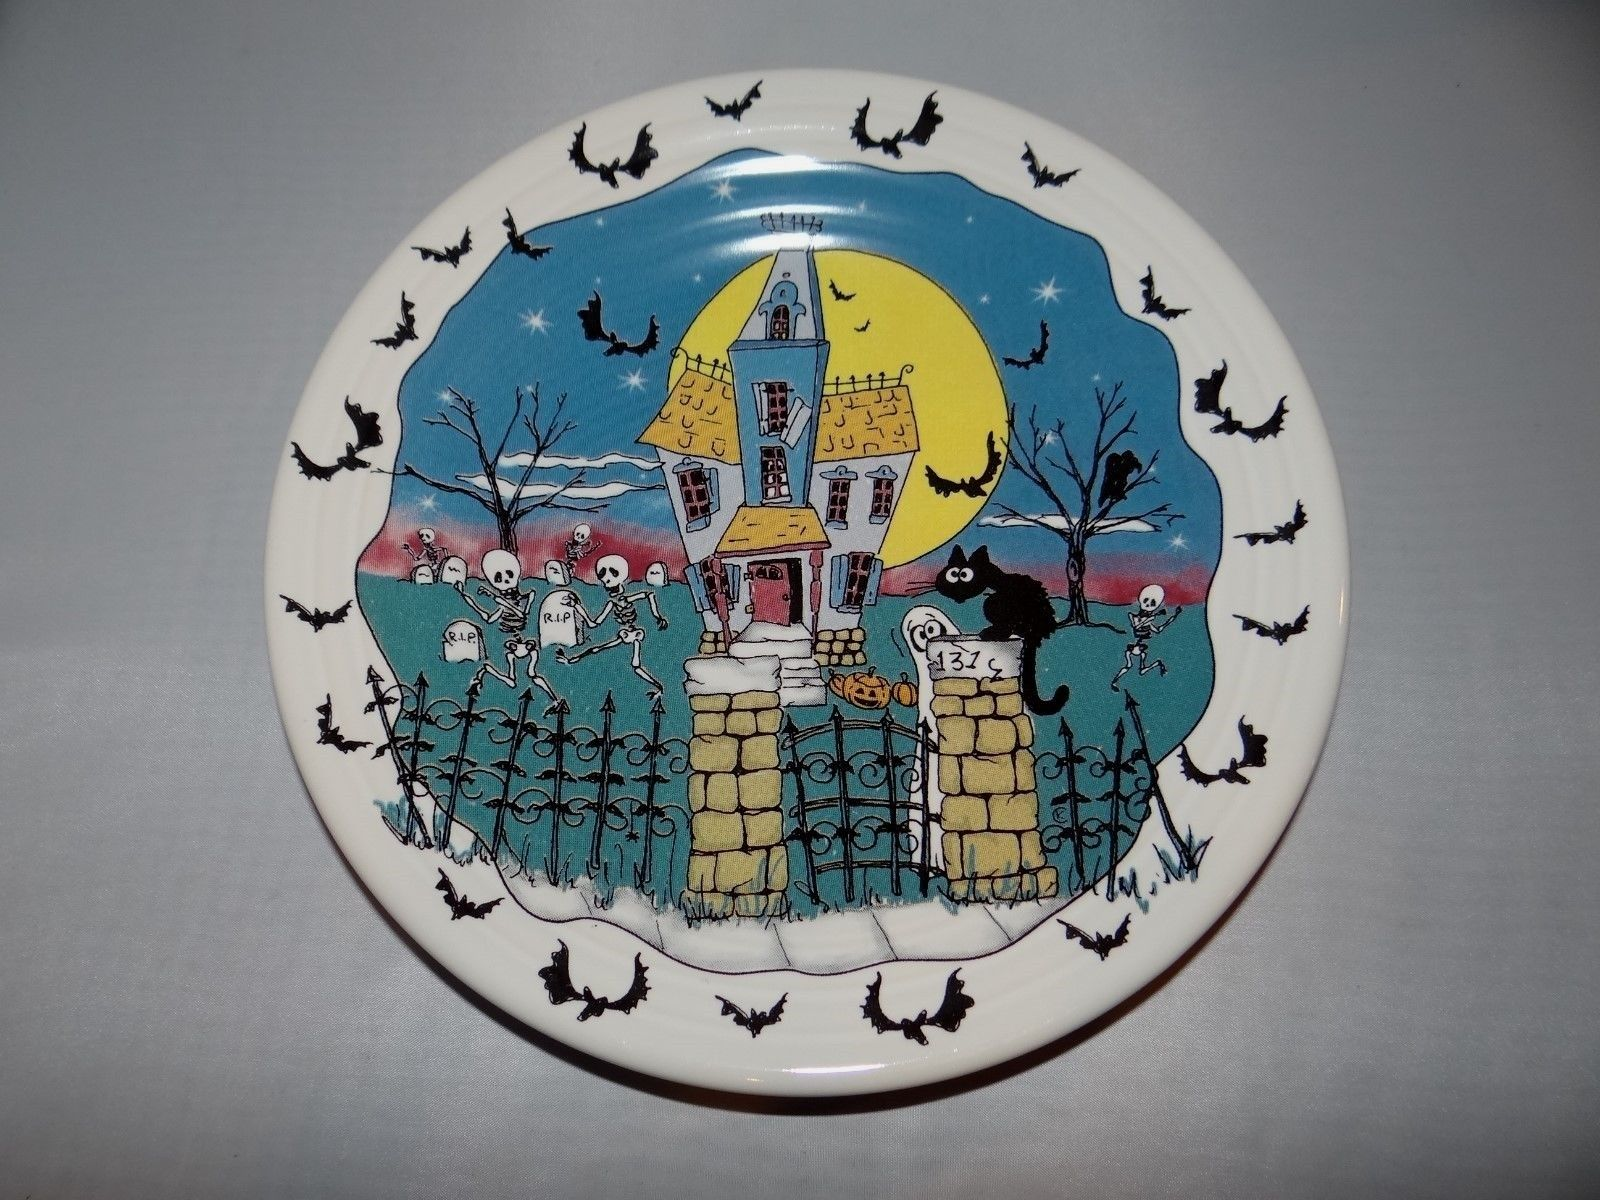 add an extra festive touch to your next halloween celebration with these decorative plates from fiestaware the dancing skeletons and whimsical bats on this